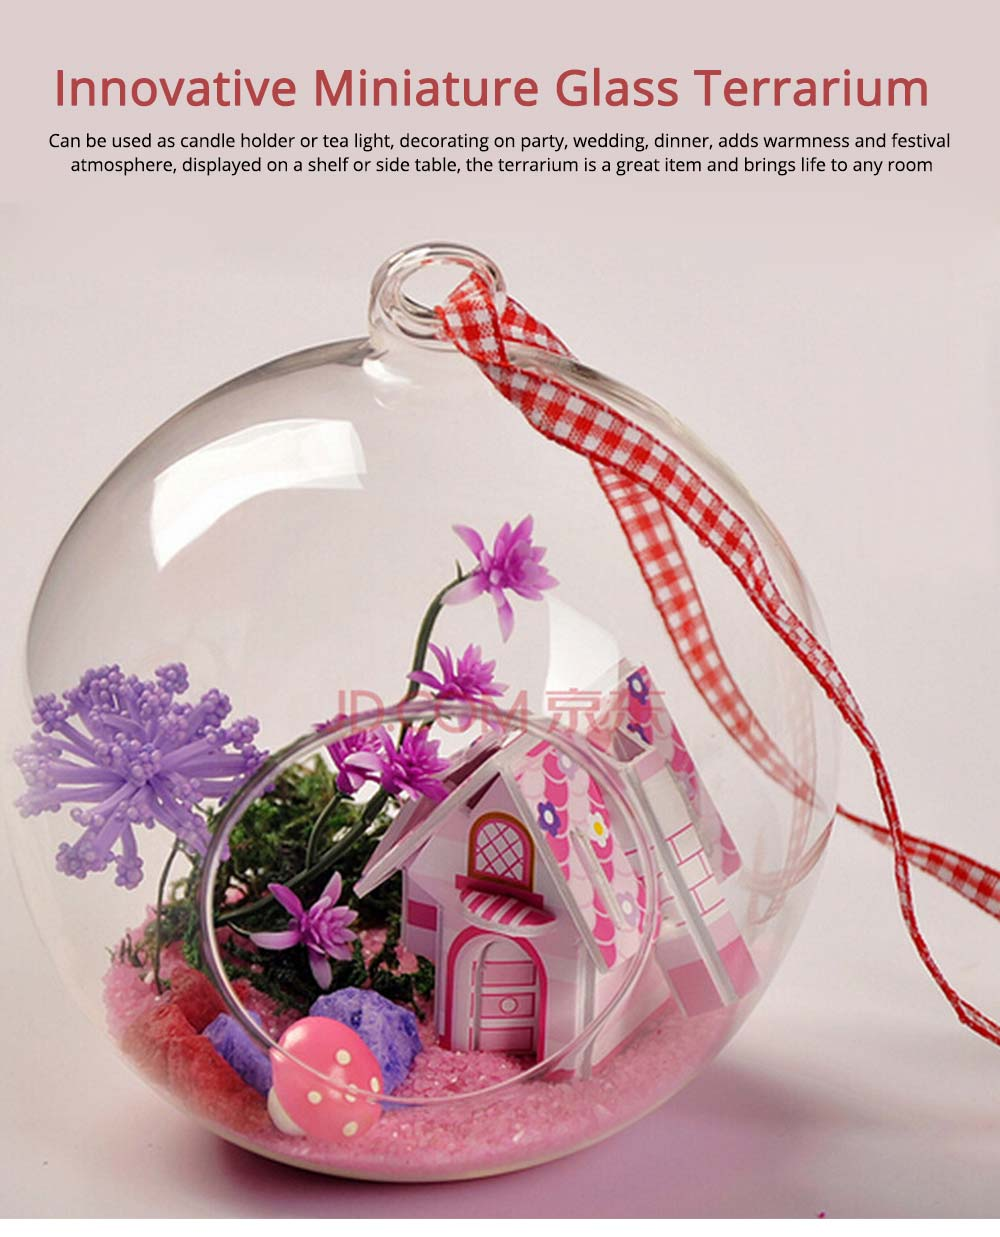 Hanging Glass Terrarium Miniature House Decoration for House, Office, Room,Gift 0